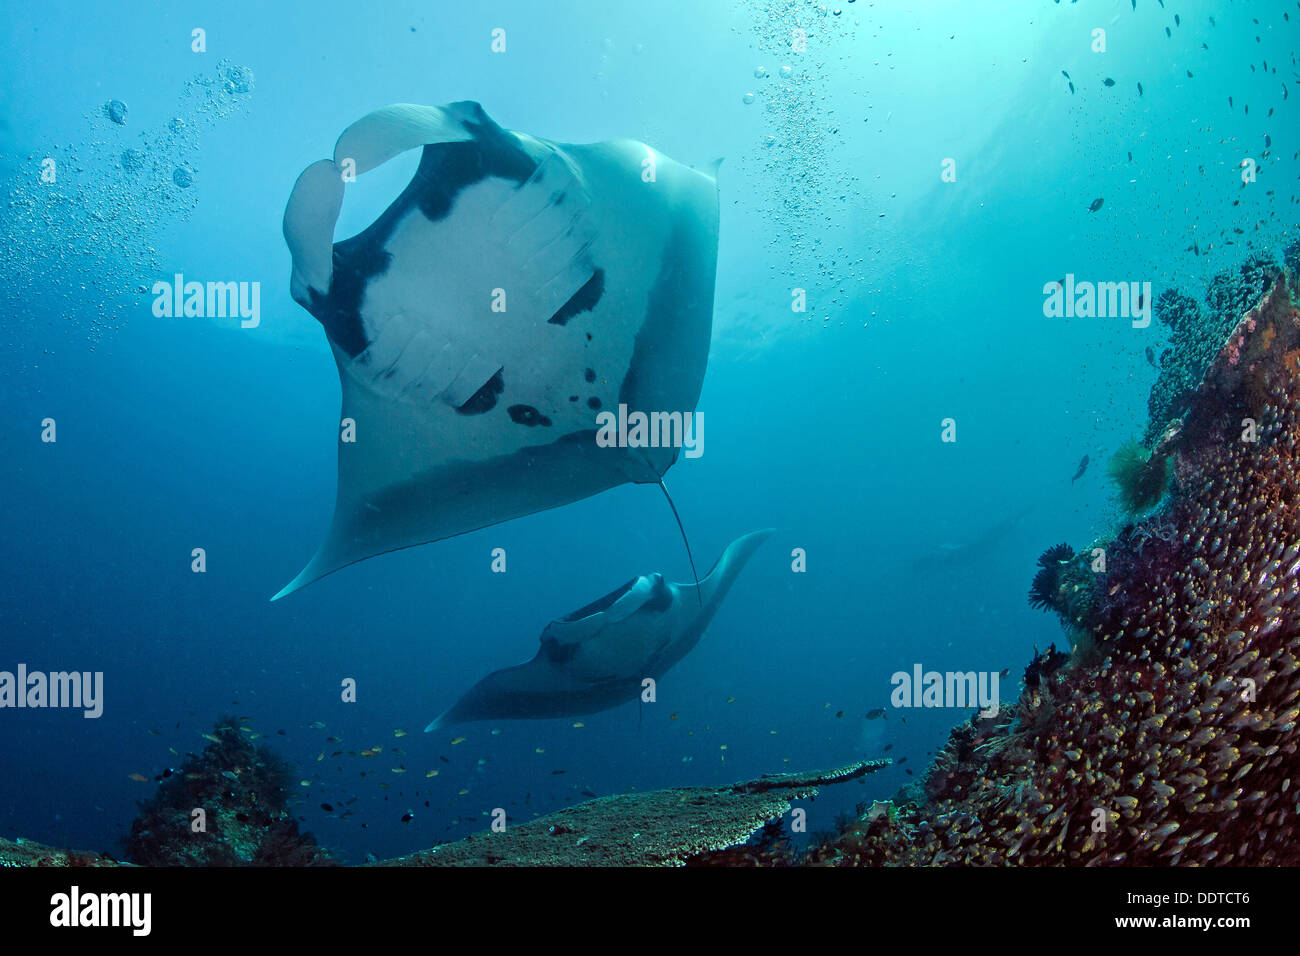 Manta ray overhead and another one approaching. - Stock Image